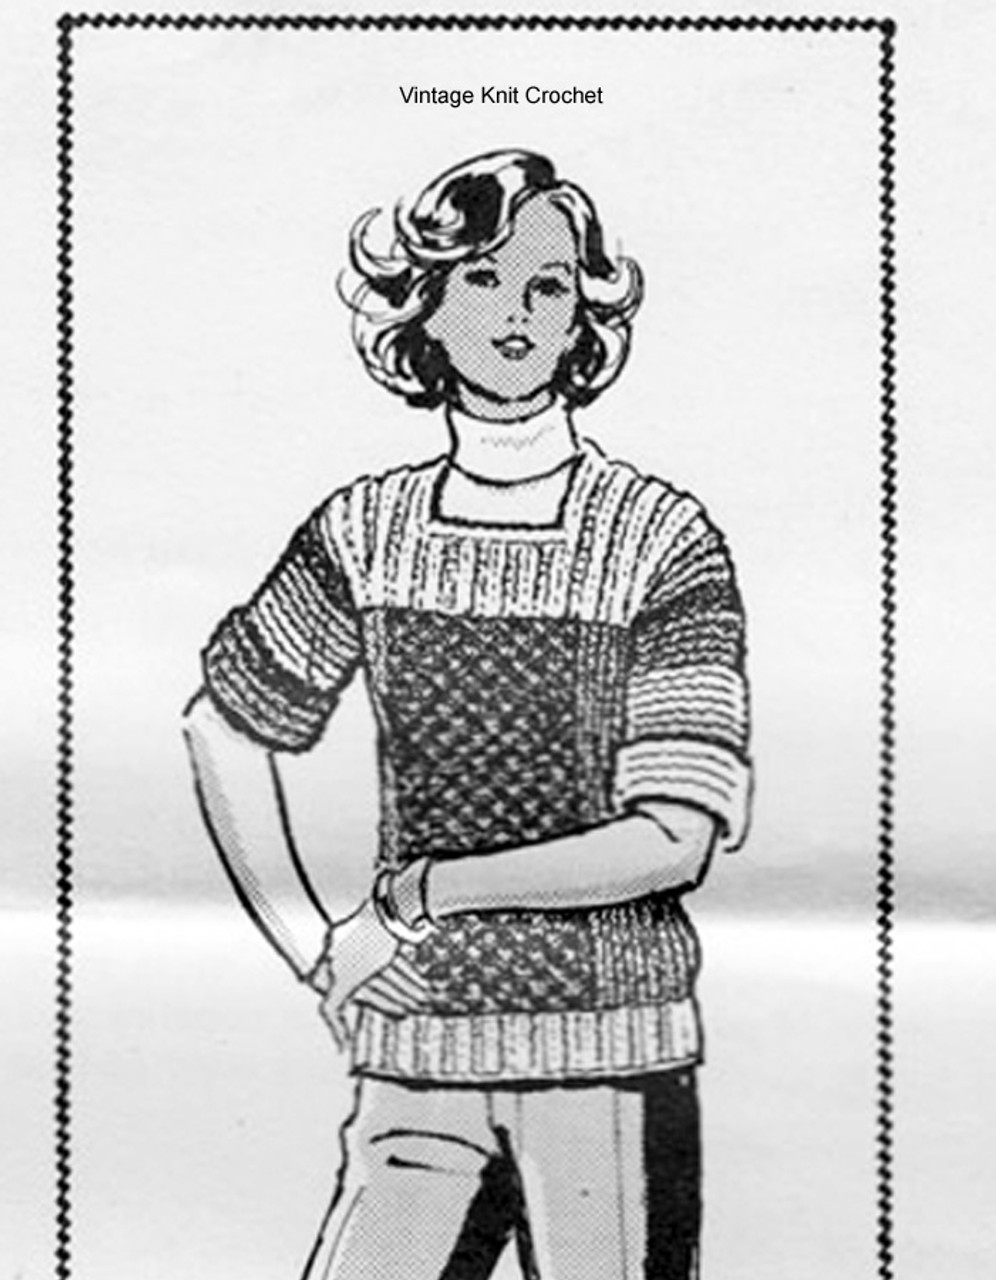 Mail Order Knitted Top Pattern in Color Blocks, Laura Wheeler 531